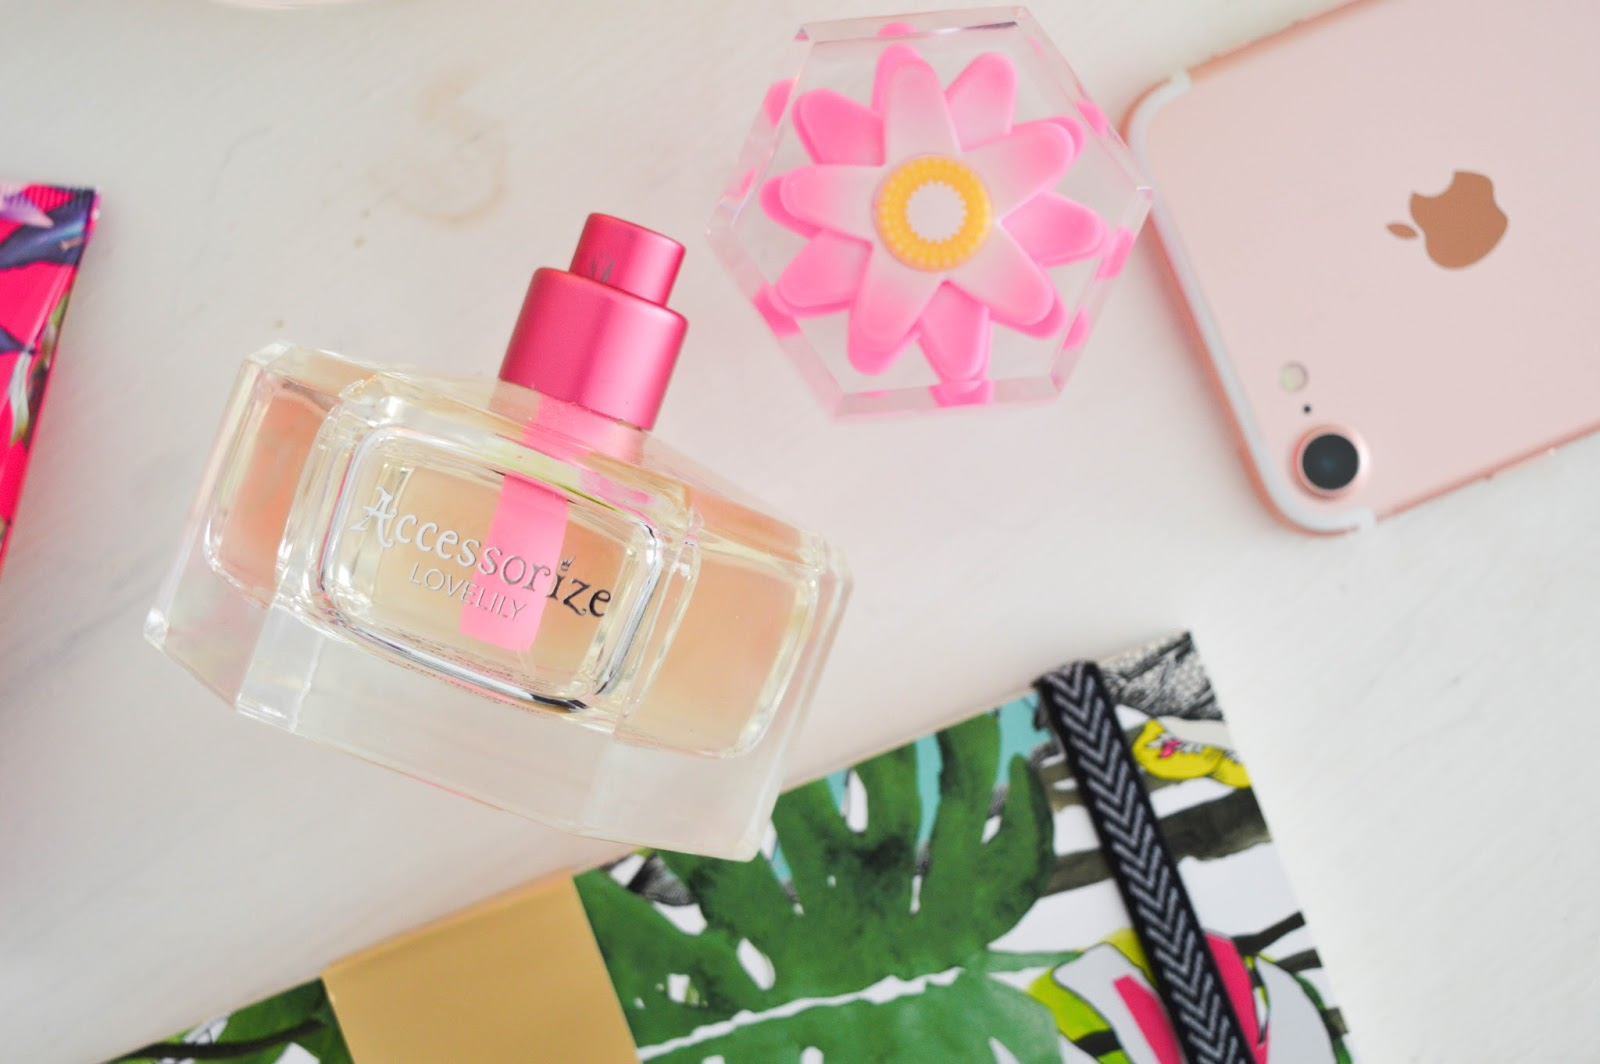 Accessorize Lovelily Perfume, Accessorize perfume, should I wear perfume to a job interview, beauty blog